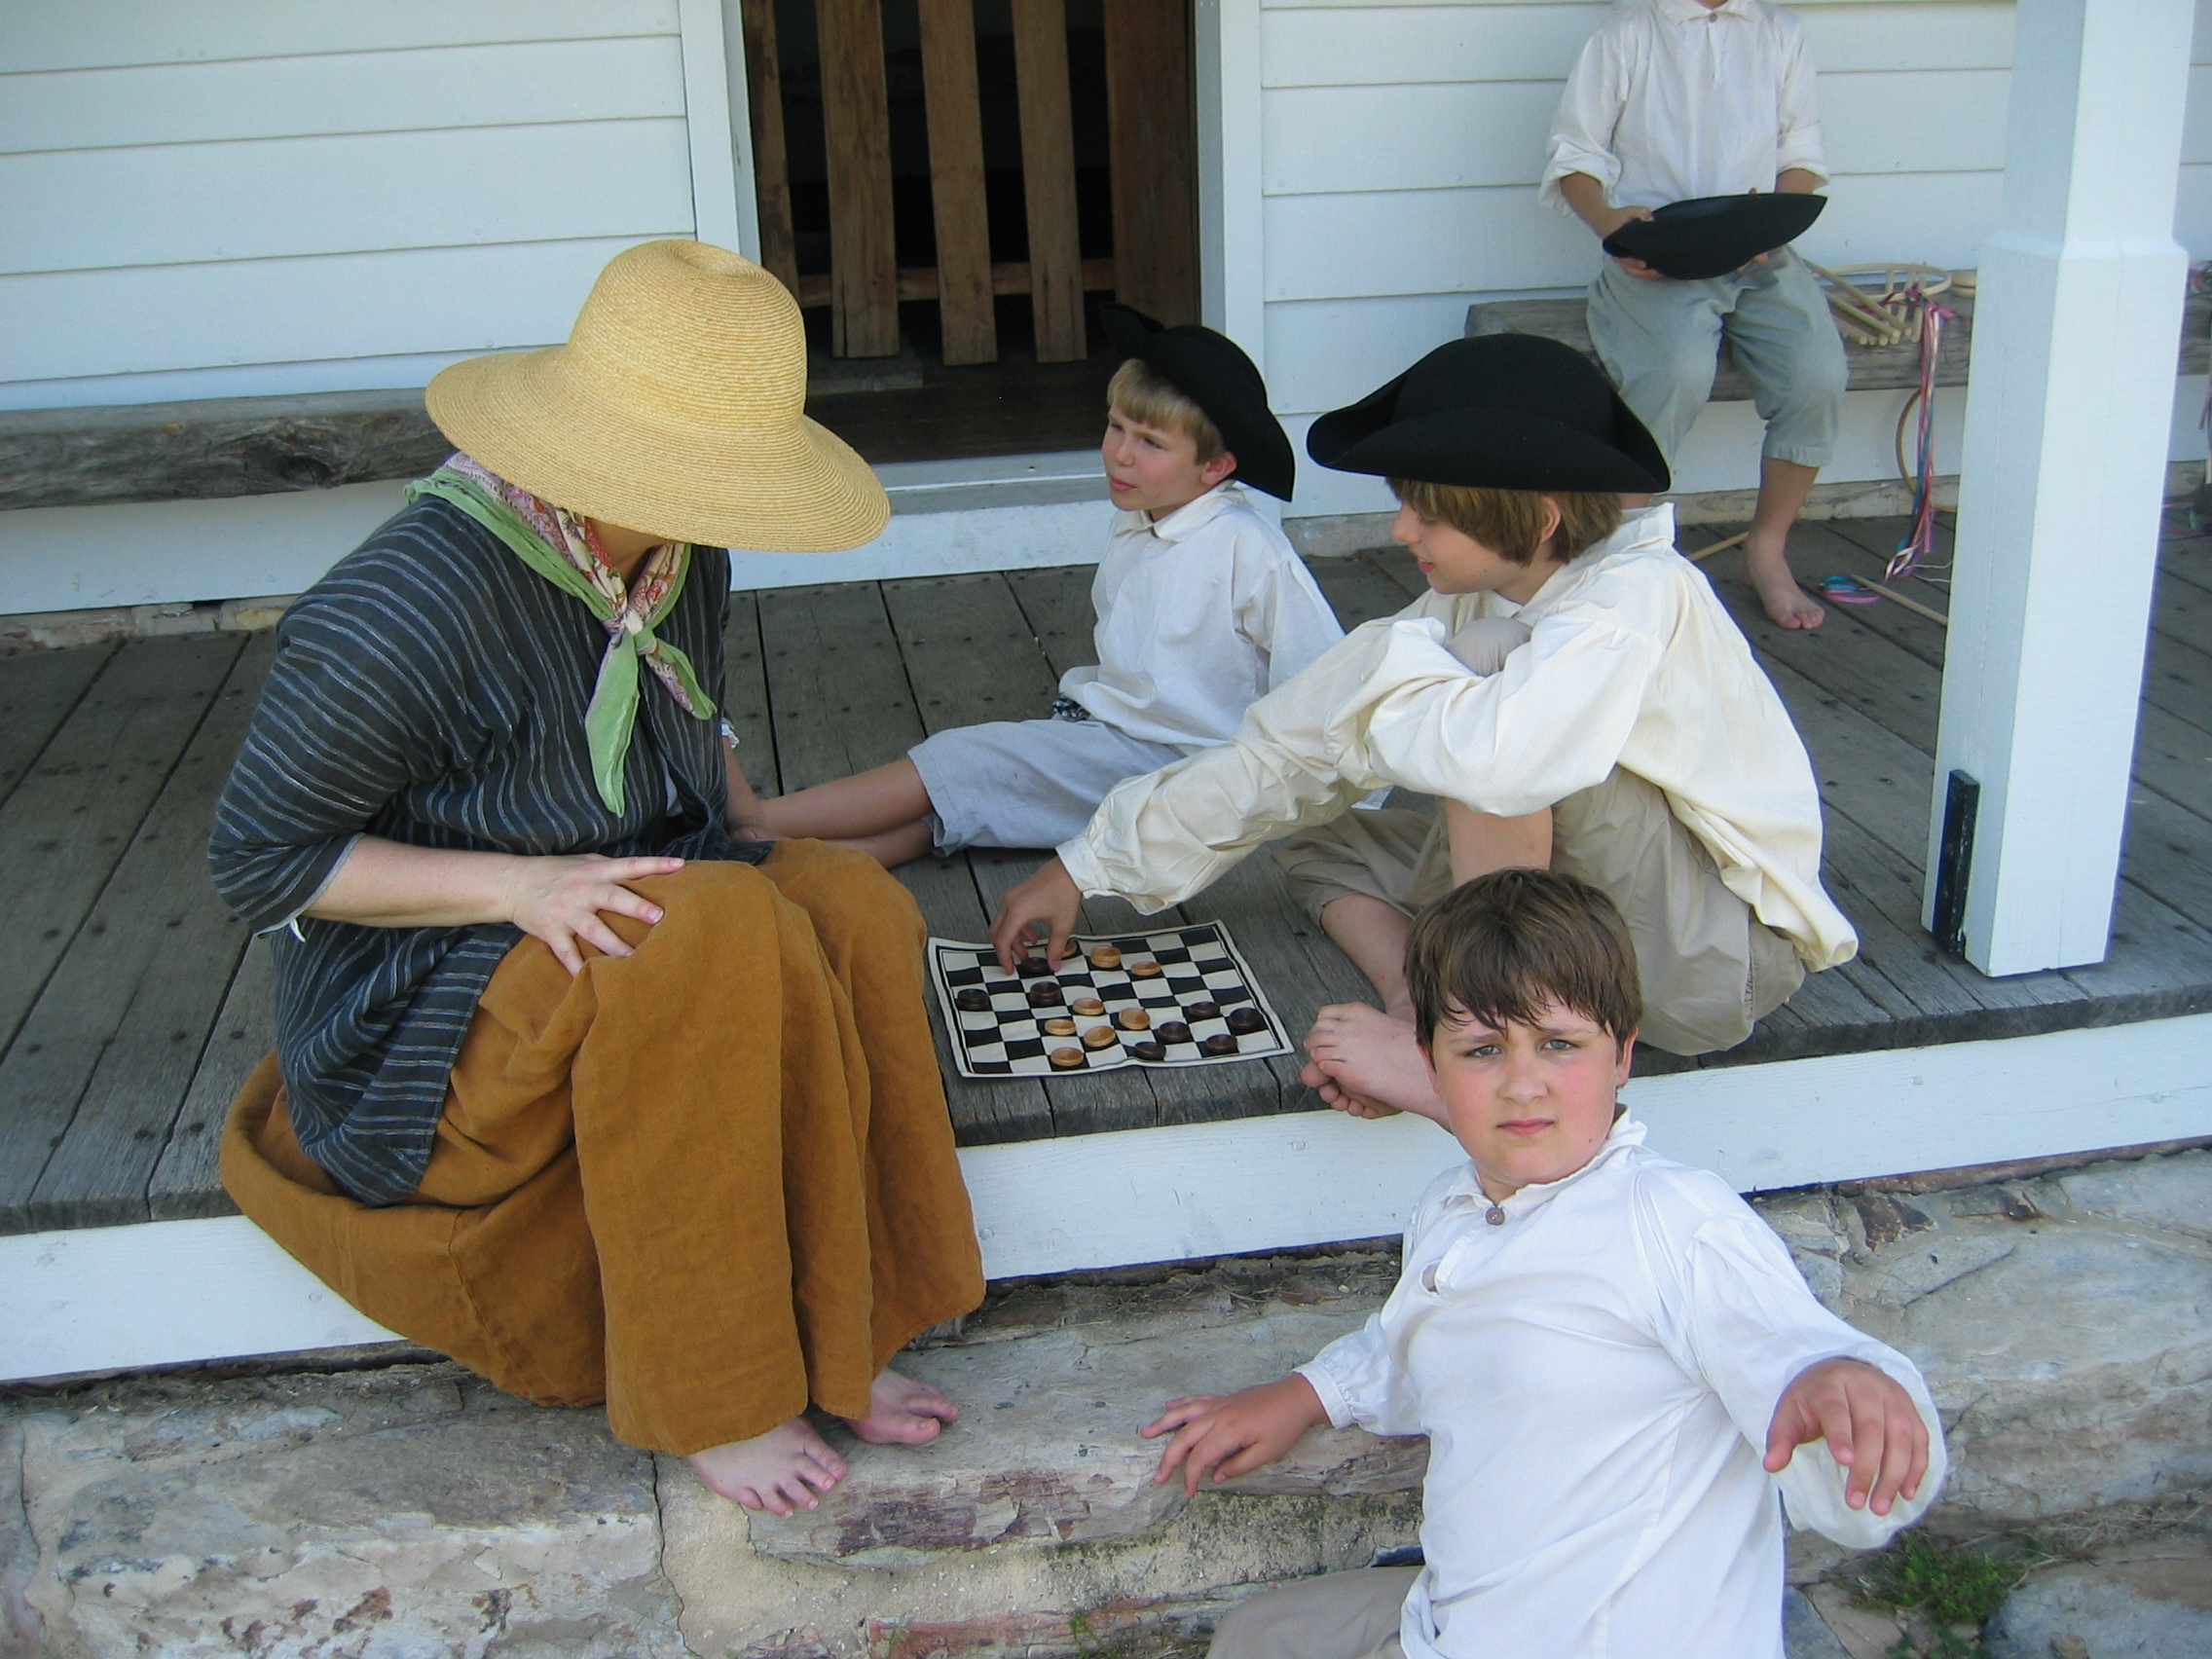 Colonial Children Playing Games